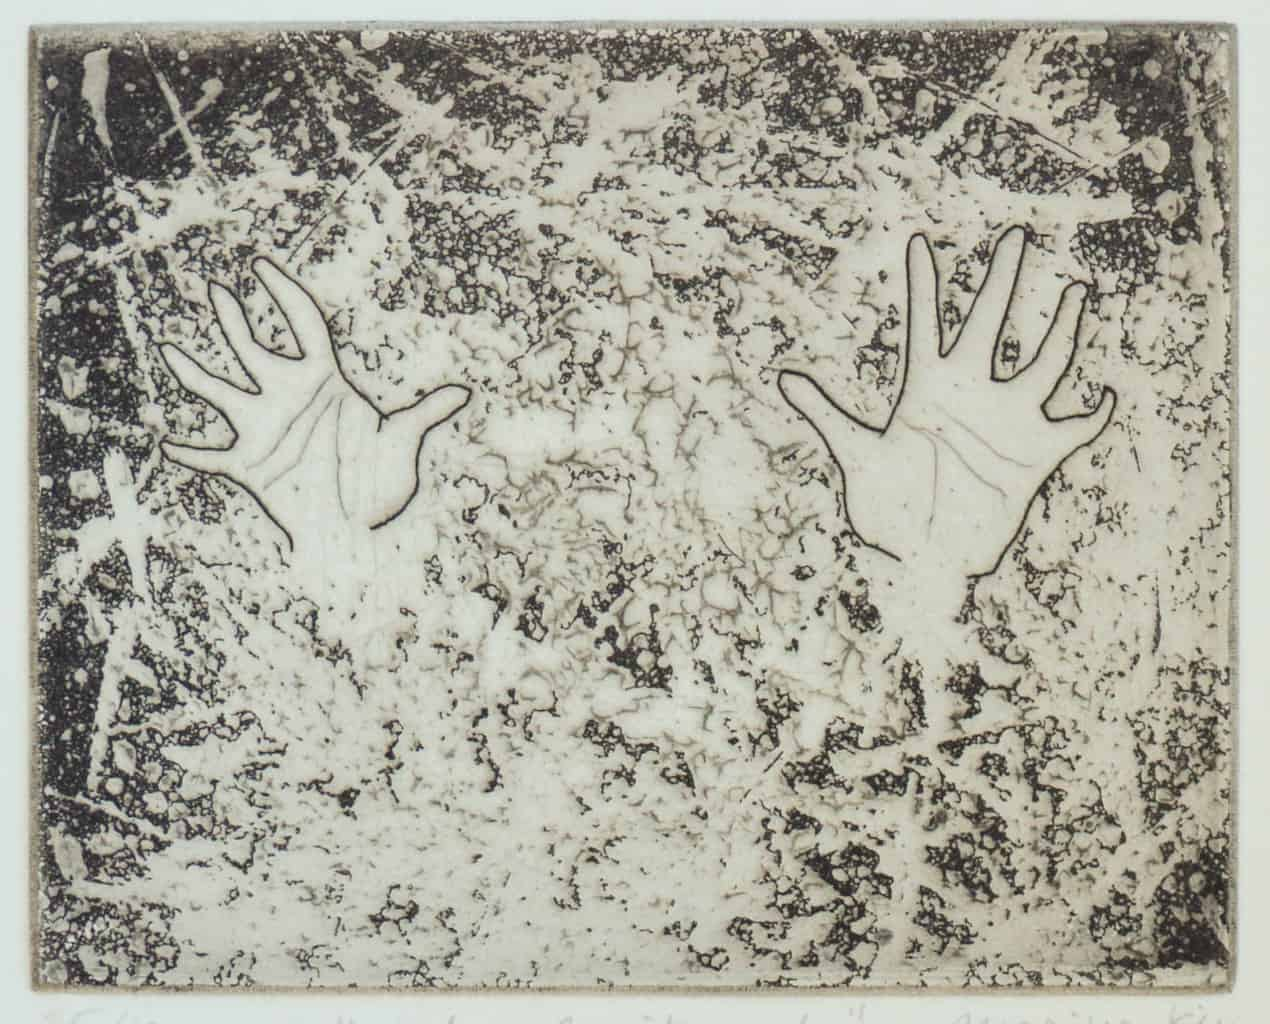 """""""Excitement"""" - image from the """"Hands"""" series featuring various stances of gesturing hands. Original print etching by painter-printmaker Marina Kim"""